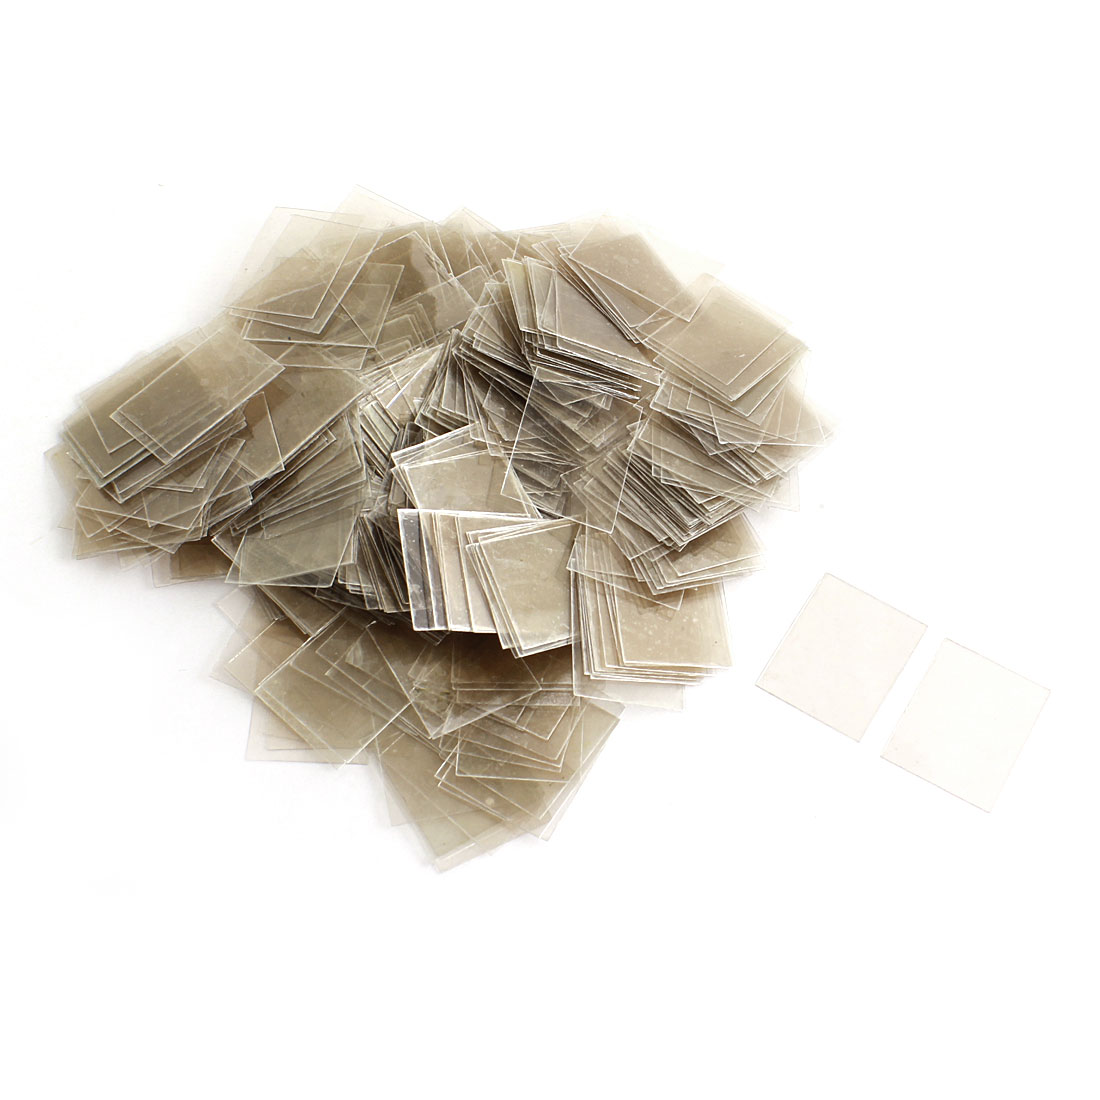 500Pcs Mica Paper Sheets Insulator 20mmx25mmx0.09mm